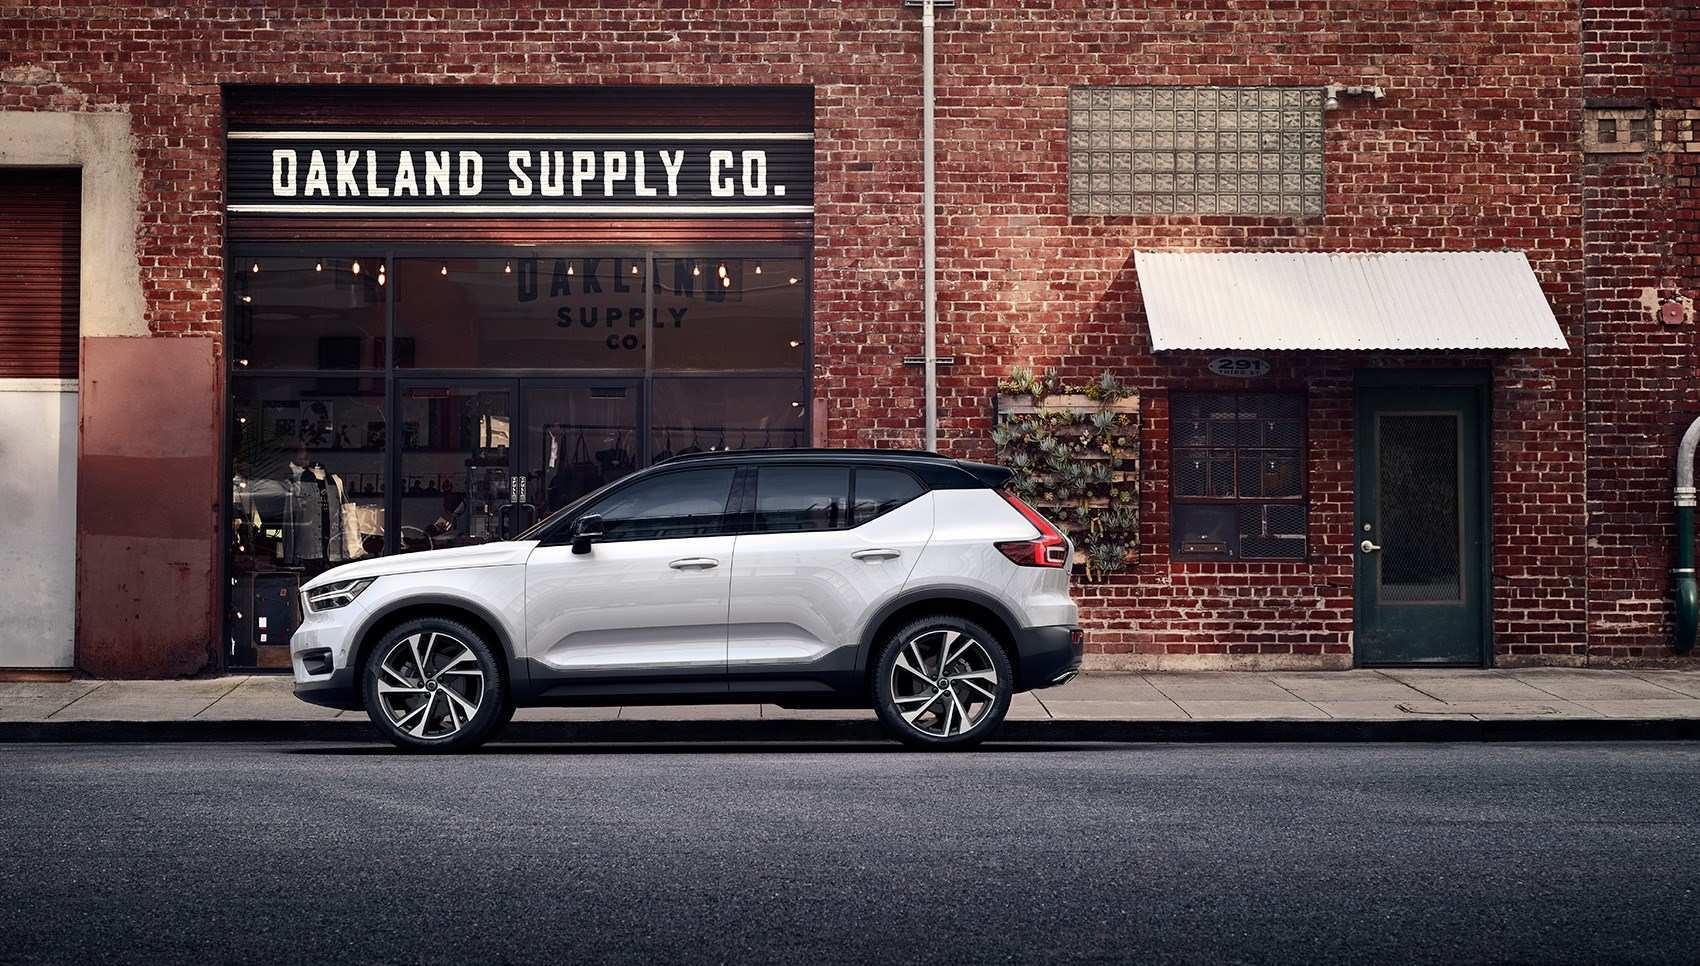 84 New 2020 Volvo Xc40 Brochure Reviews by 2020 Volvo Xc40 Brochure